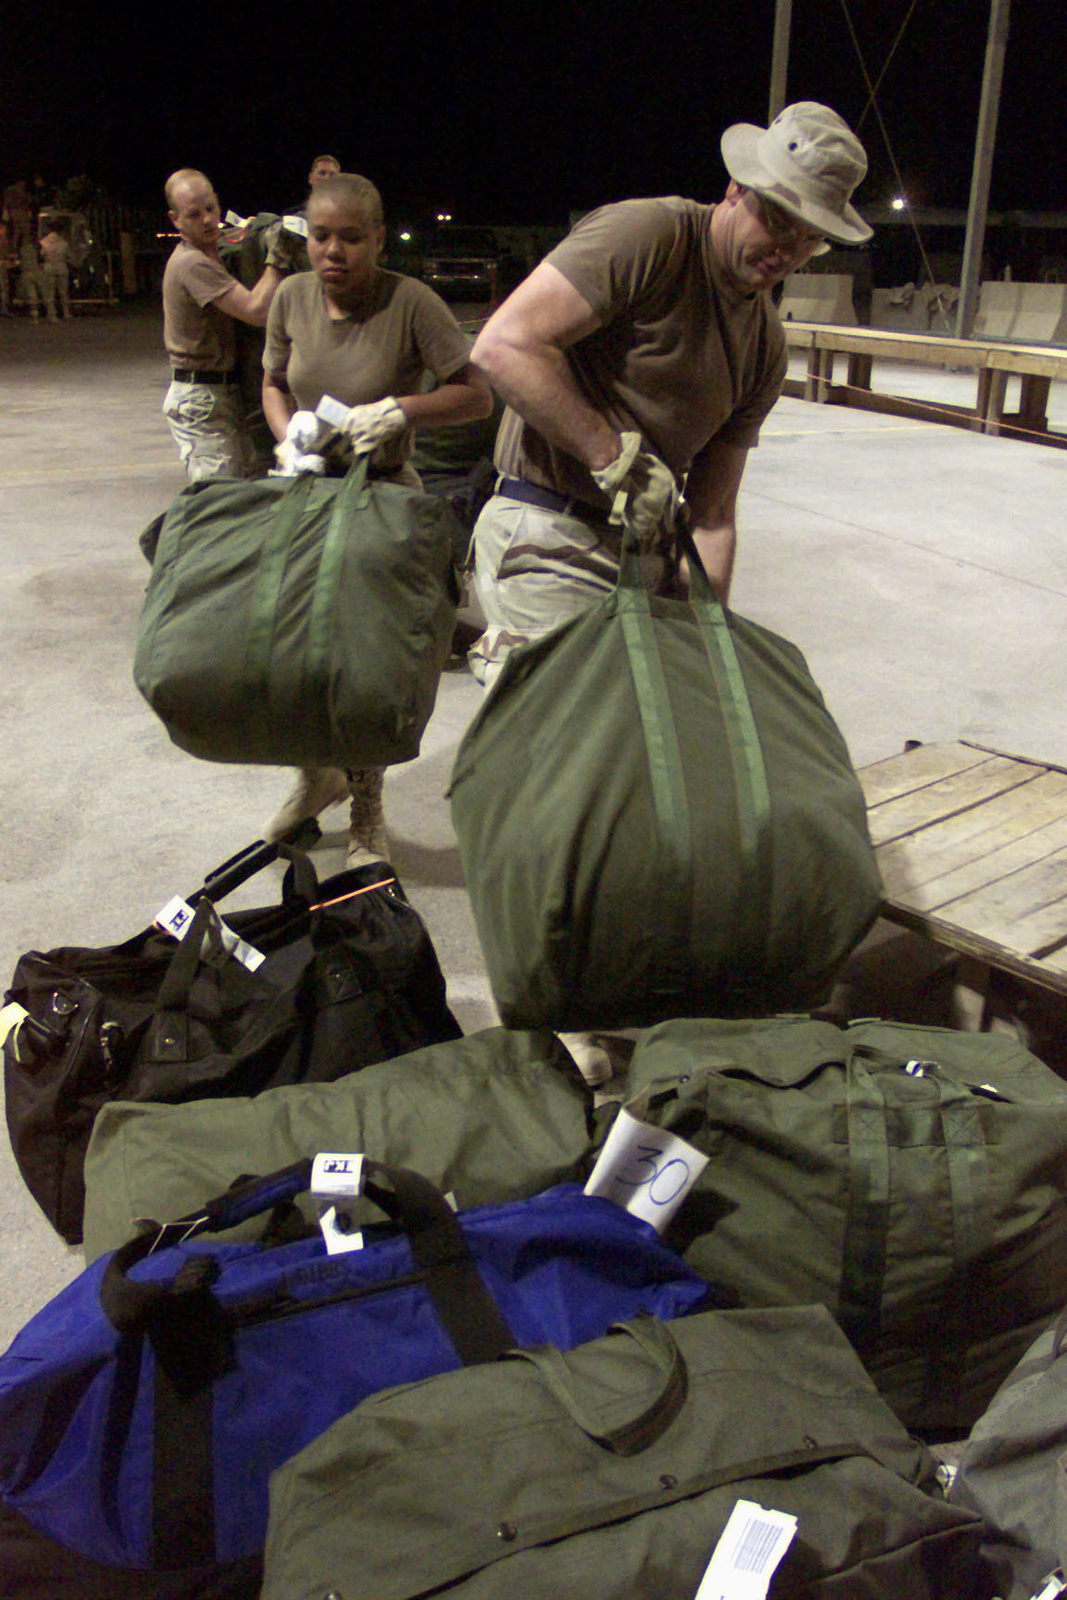 US Air Force personnel of the 363rd Expeditionary Wing, Prince Sultan Air Base, Saudi Arabia, place the bags of personnel who just came in on a Boeing 757 aircraft (Not shown). They are a part of the coalition forces of the 363rd Air Expeditionary Wing that enforces the no-fly and no-drive zone in Southern Iraq to protect and defend against Iraqi aggression. This mission is in direct support of Operation SOUTHERN WATCH